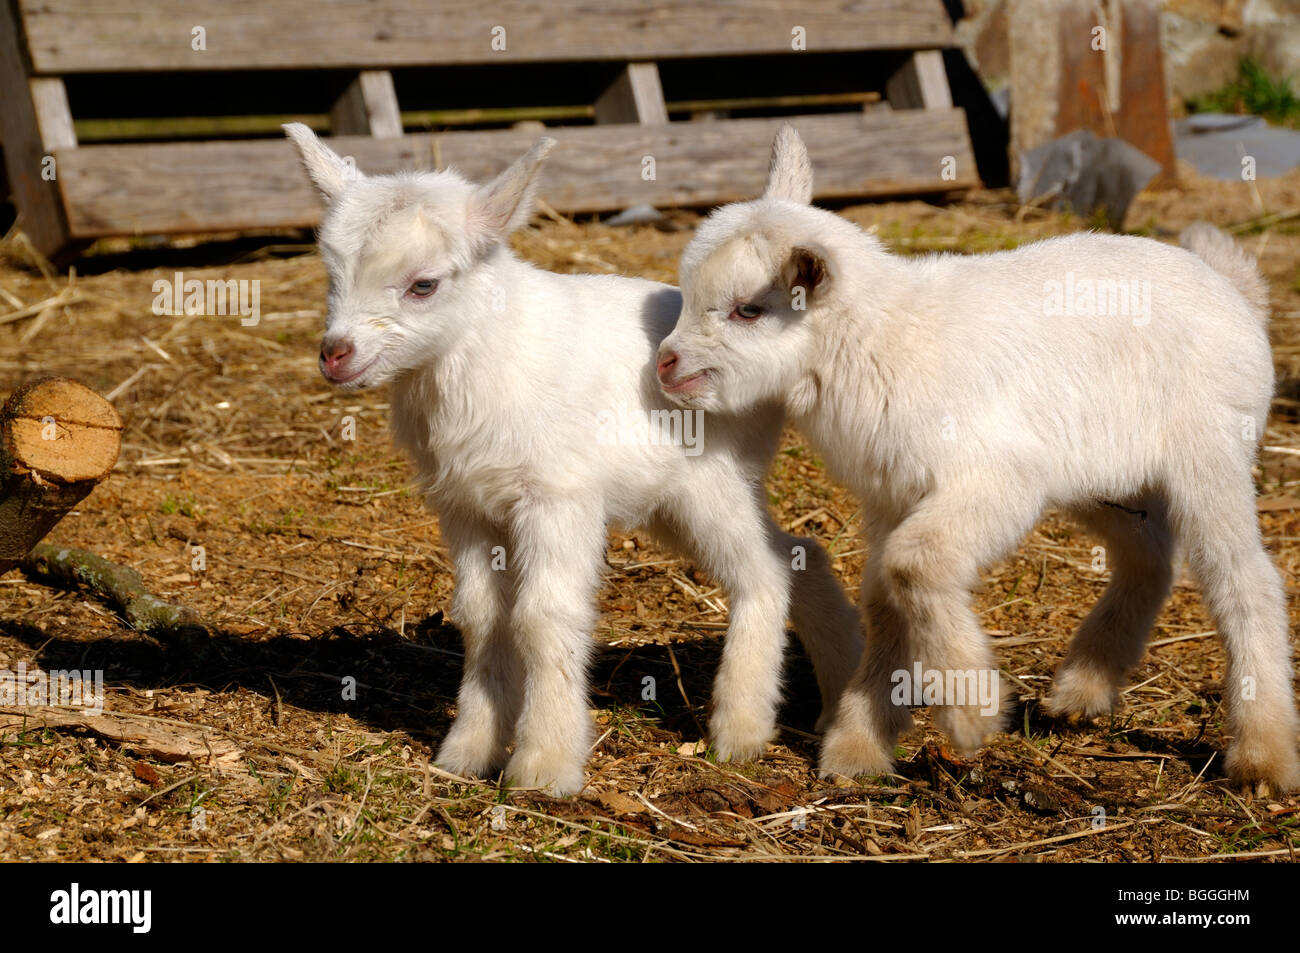 Stock photo of two white pygmy goat kids in a farmyard. - Stock Image